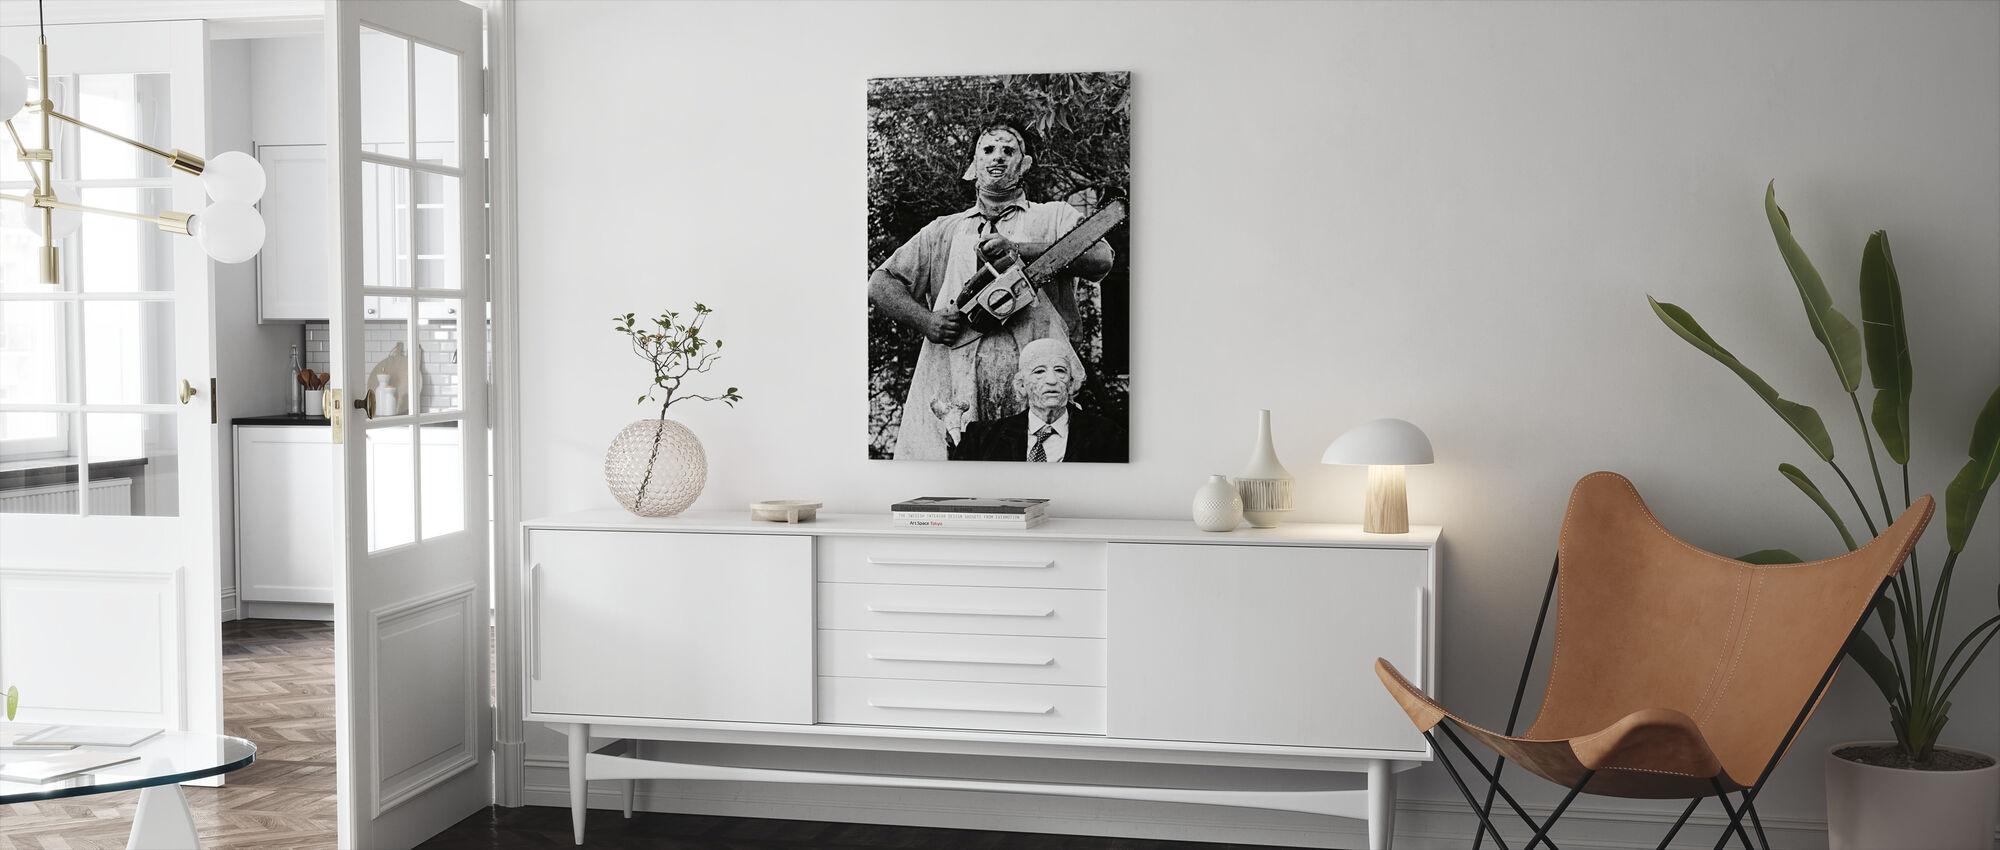 Leatherface - Canvas print - Living Room